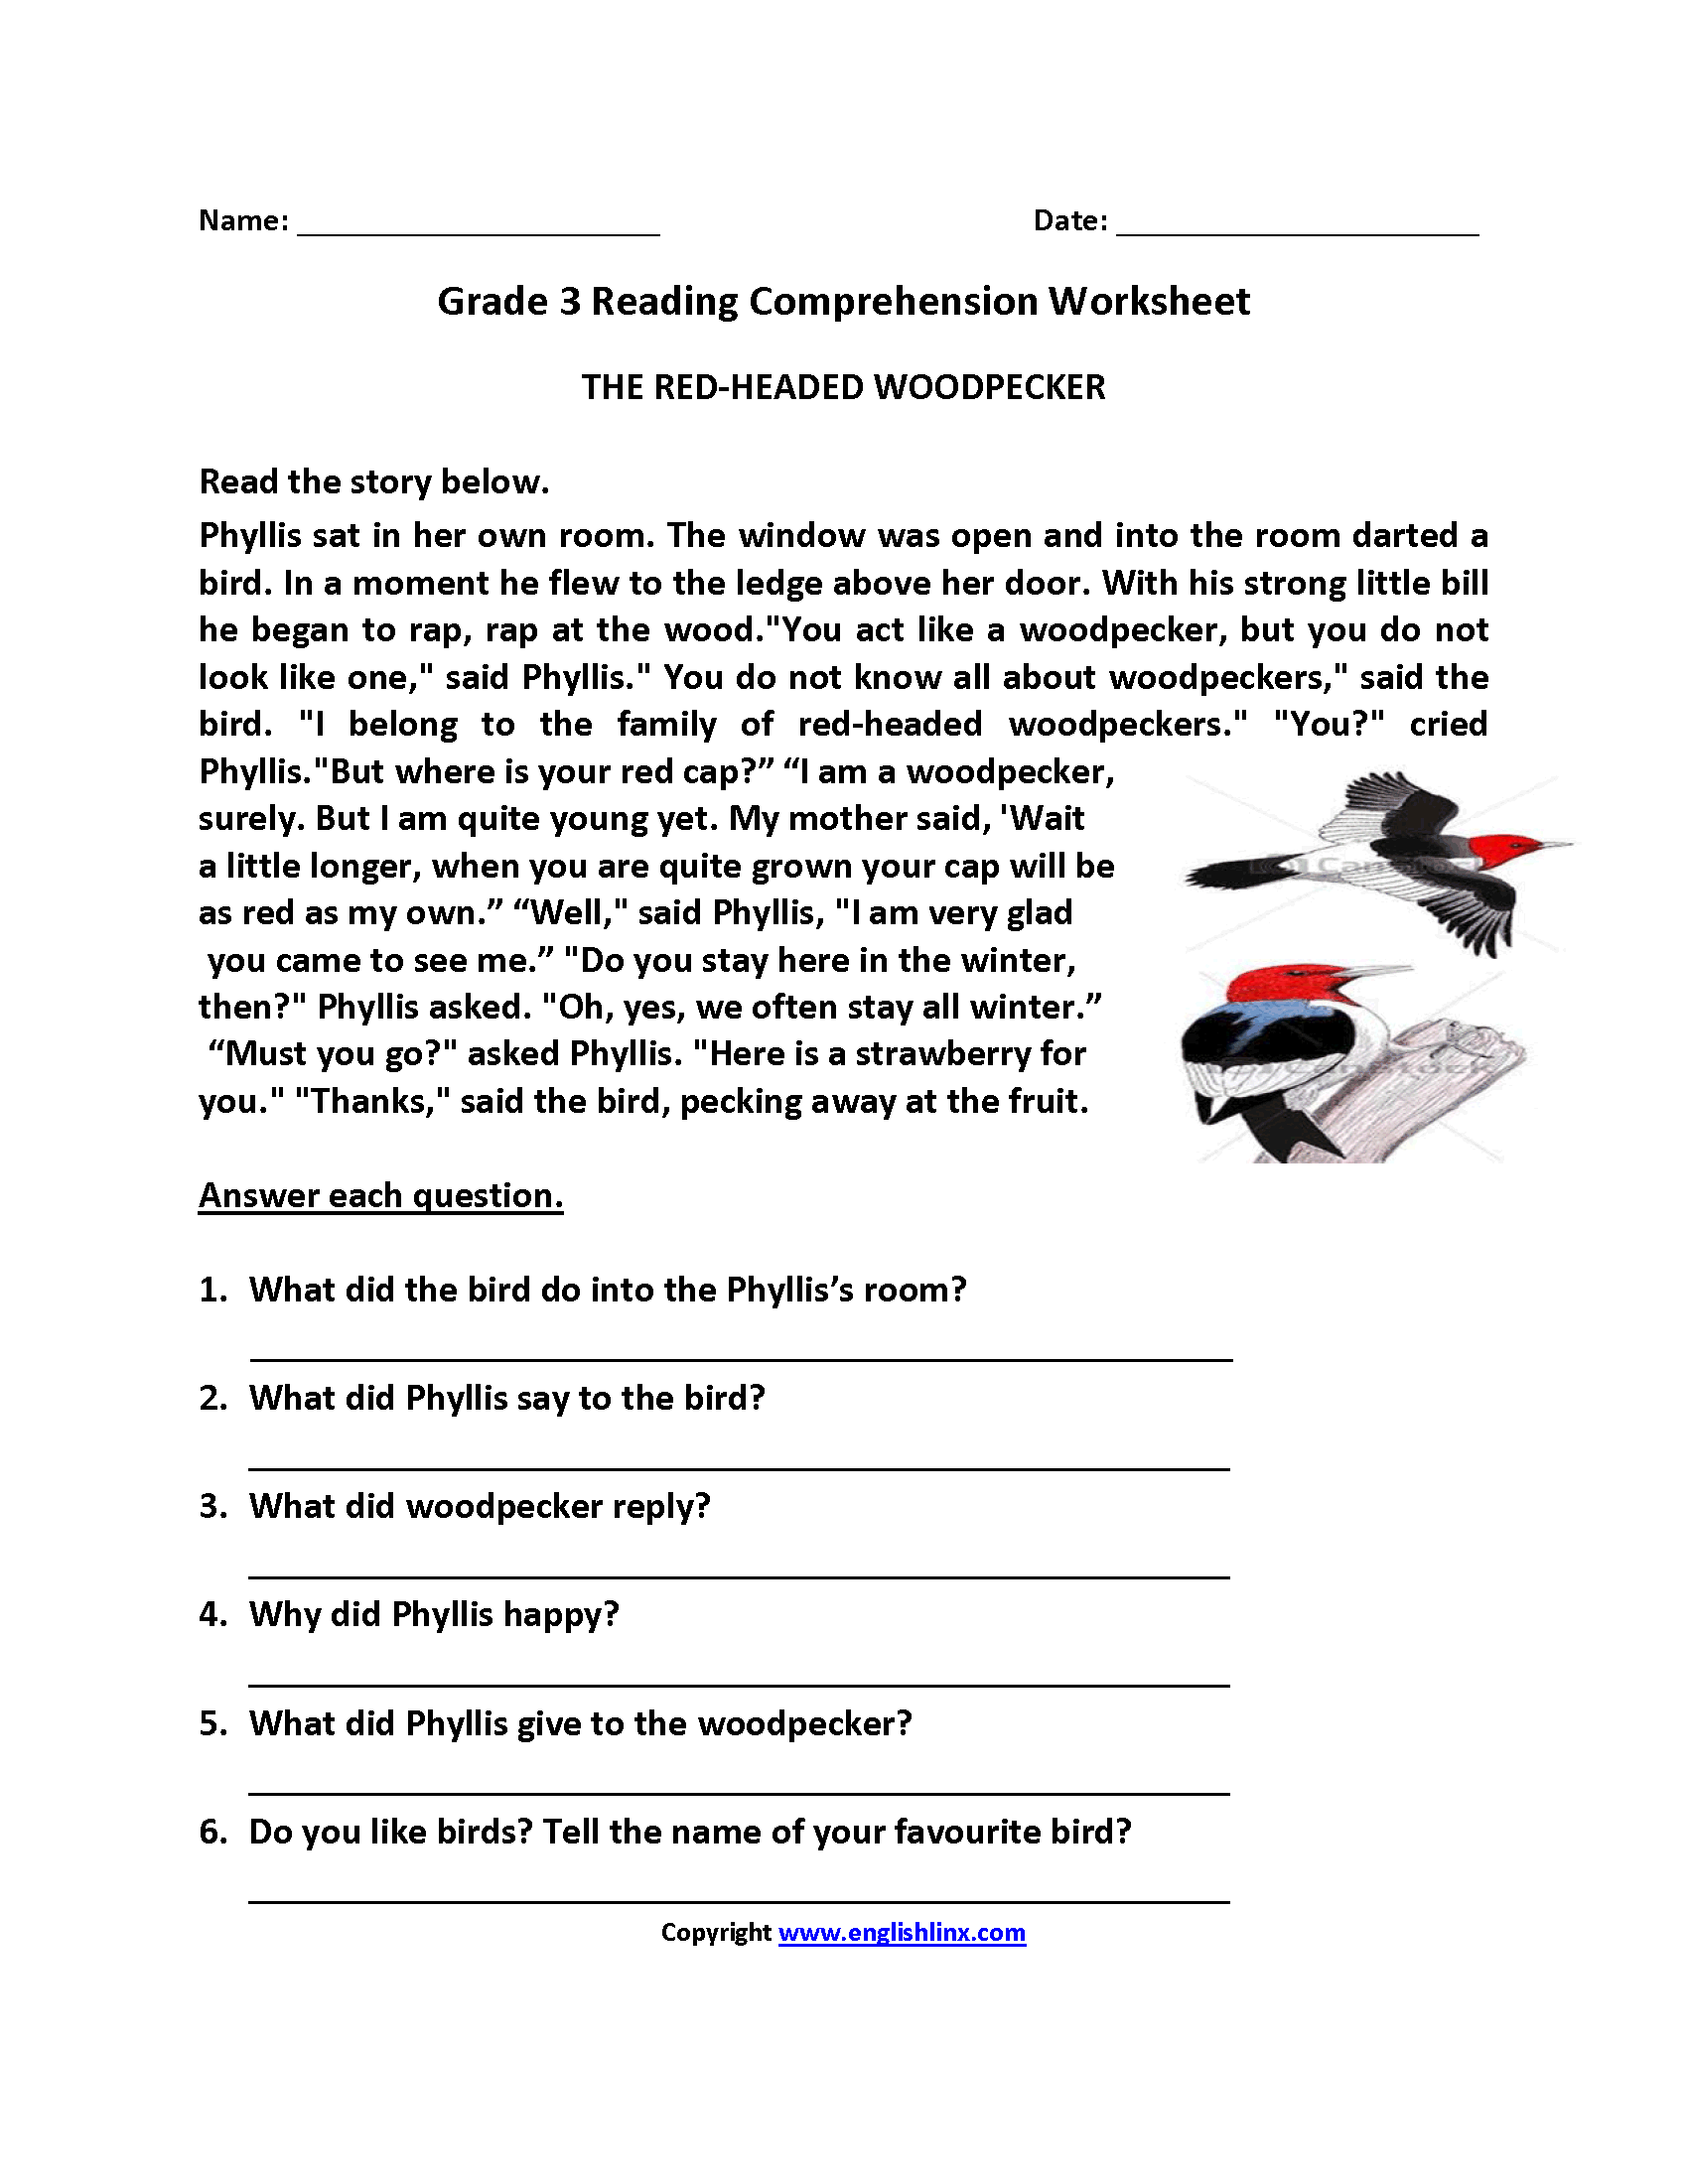 Worksheet On English Comprehension For Grade 3